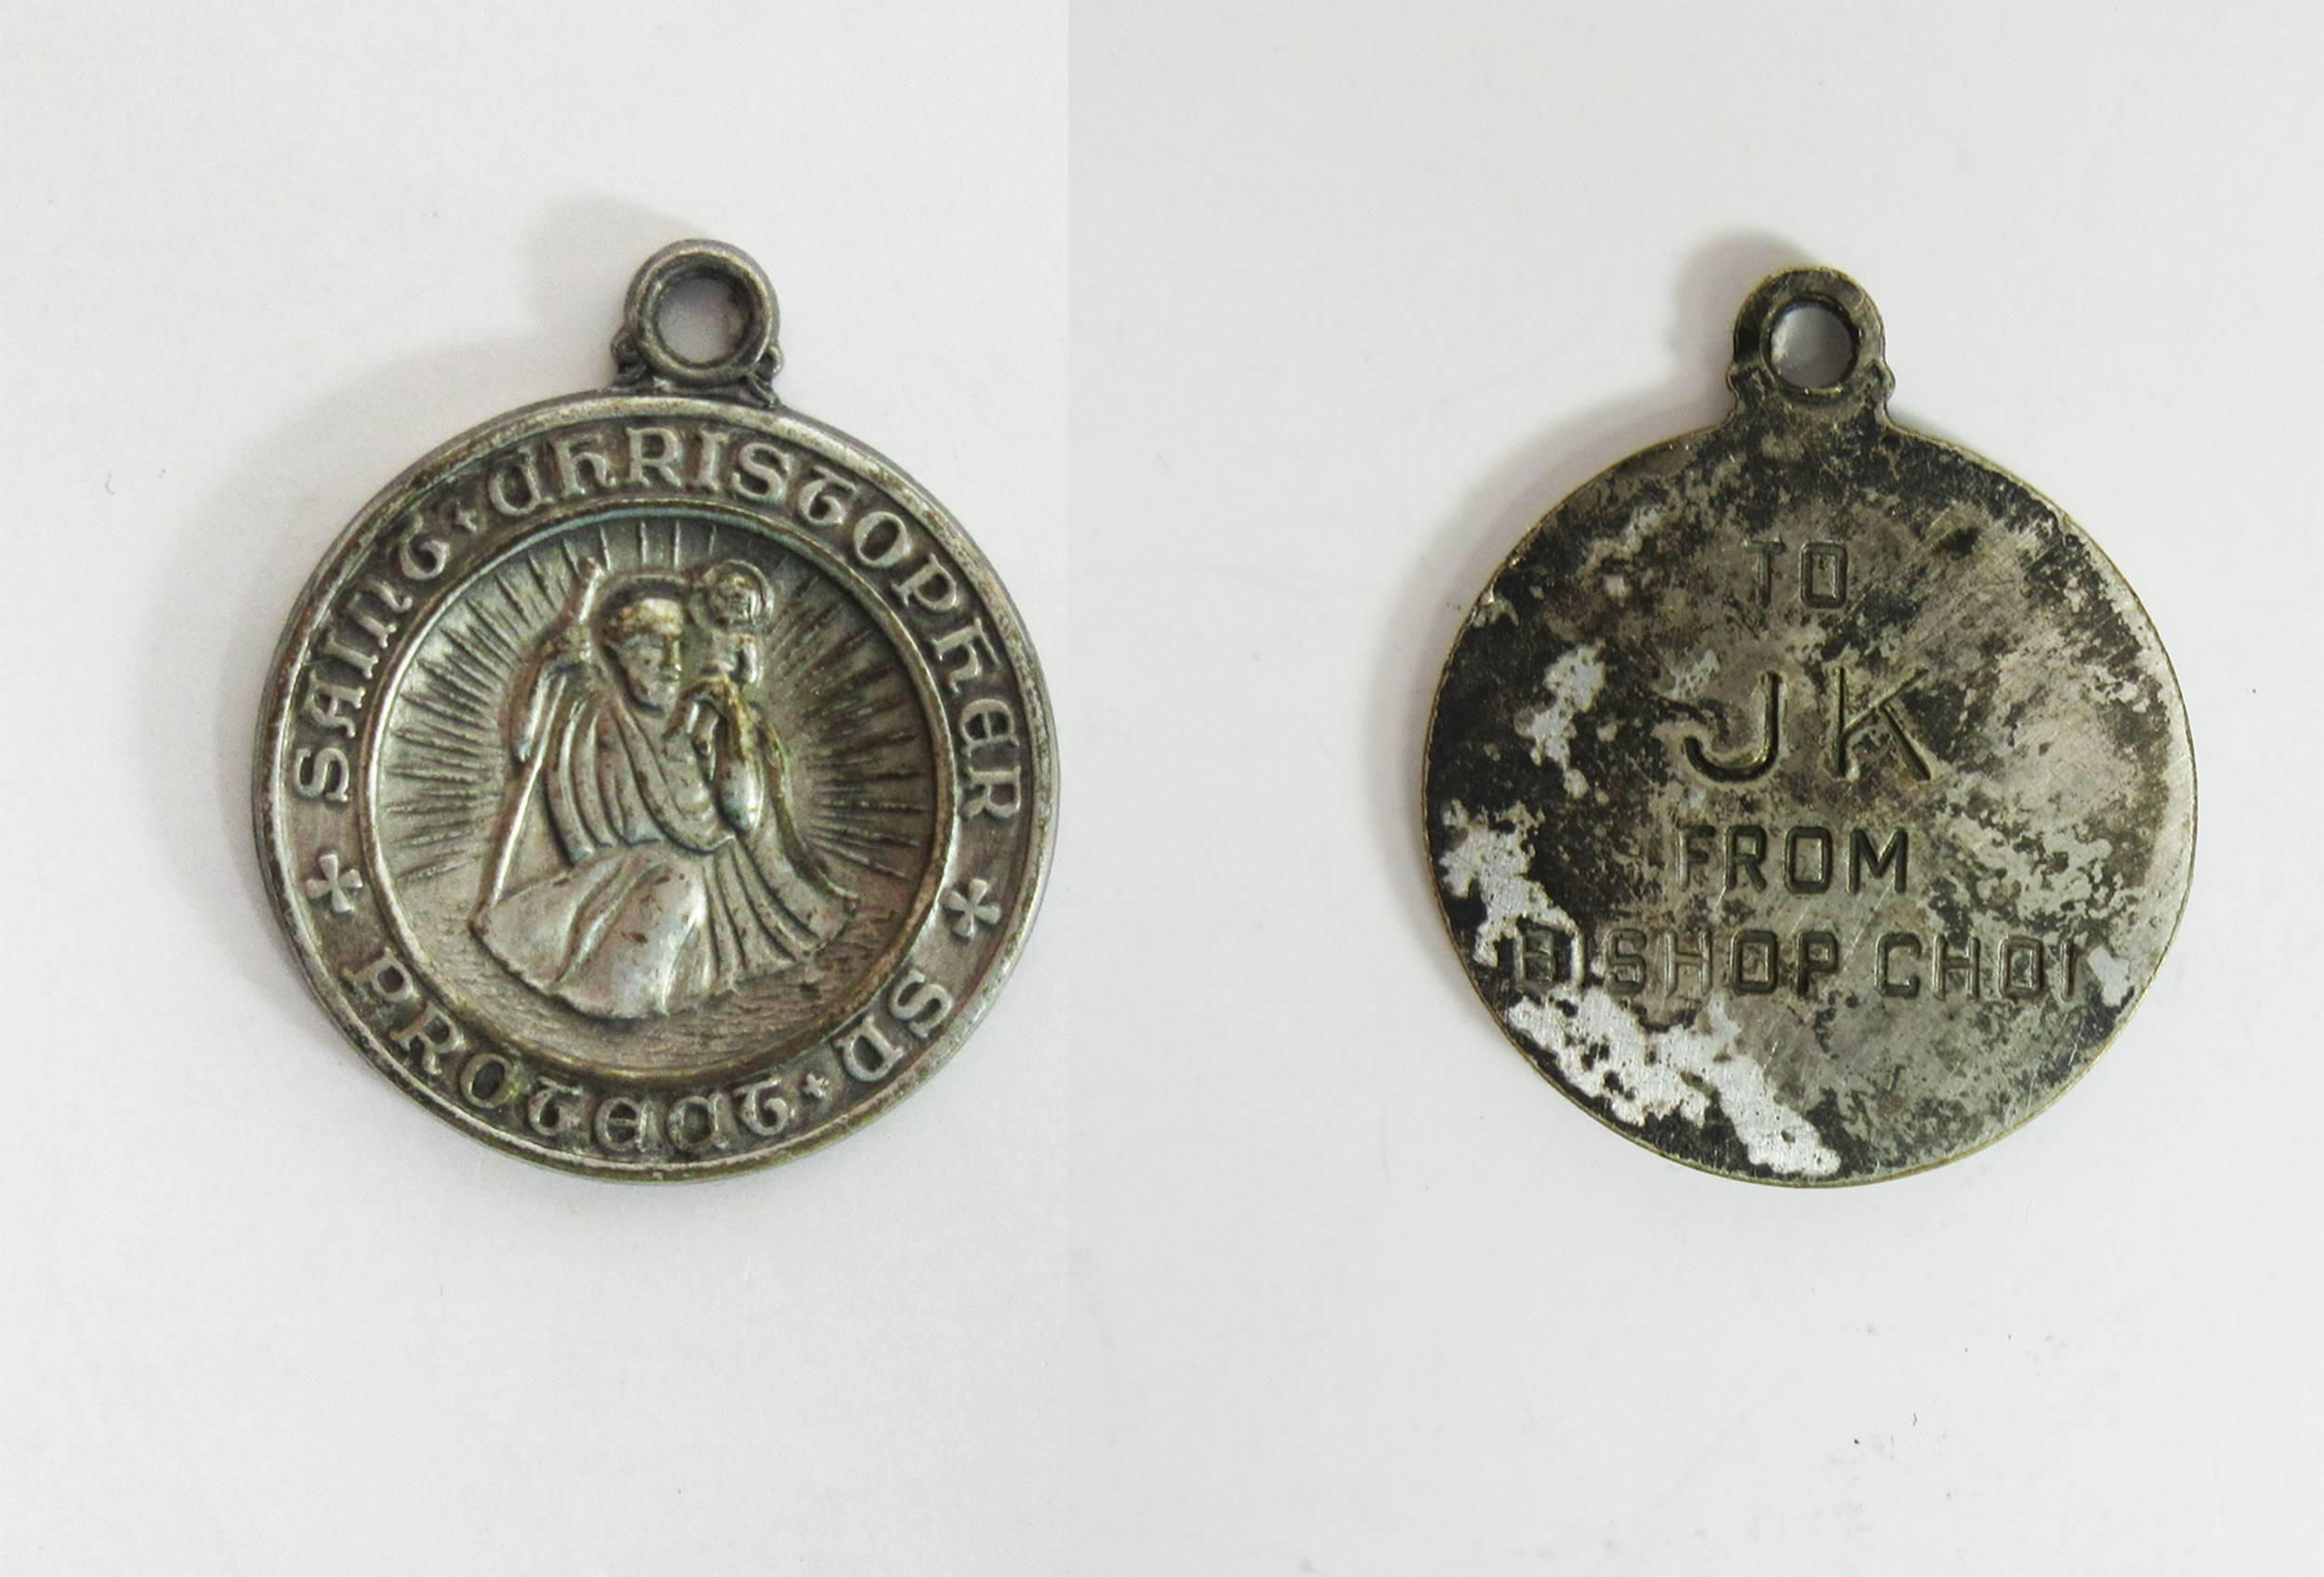 John F. Kennedy, the First Catholic President: Personally-Owned St. Christopher Medallion Given to Him While President only Months Before His Assassination. Fantastic provenance!